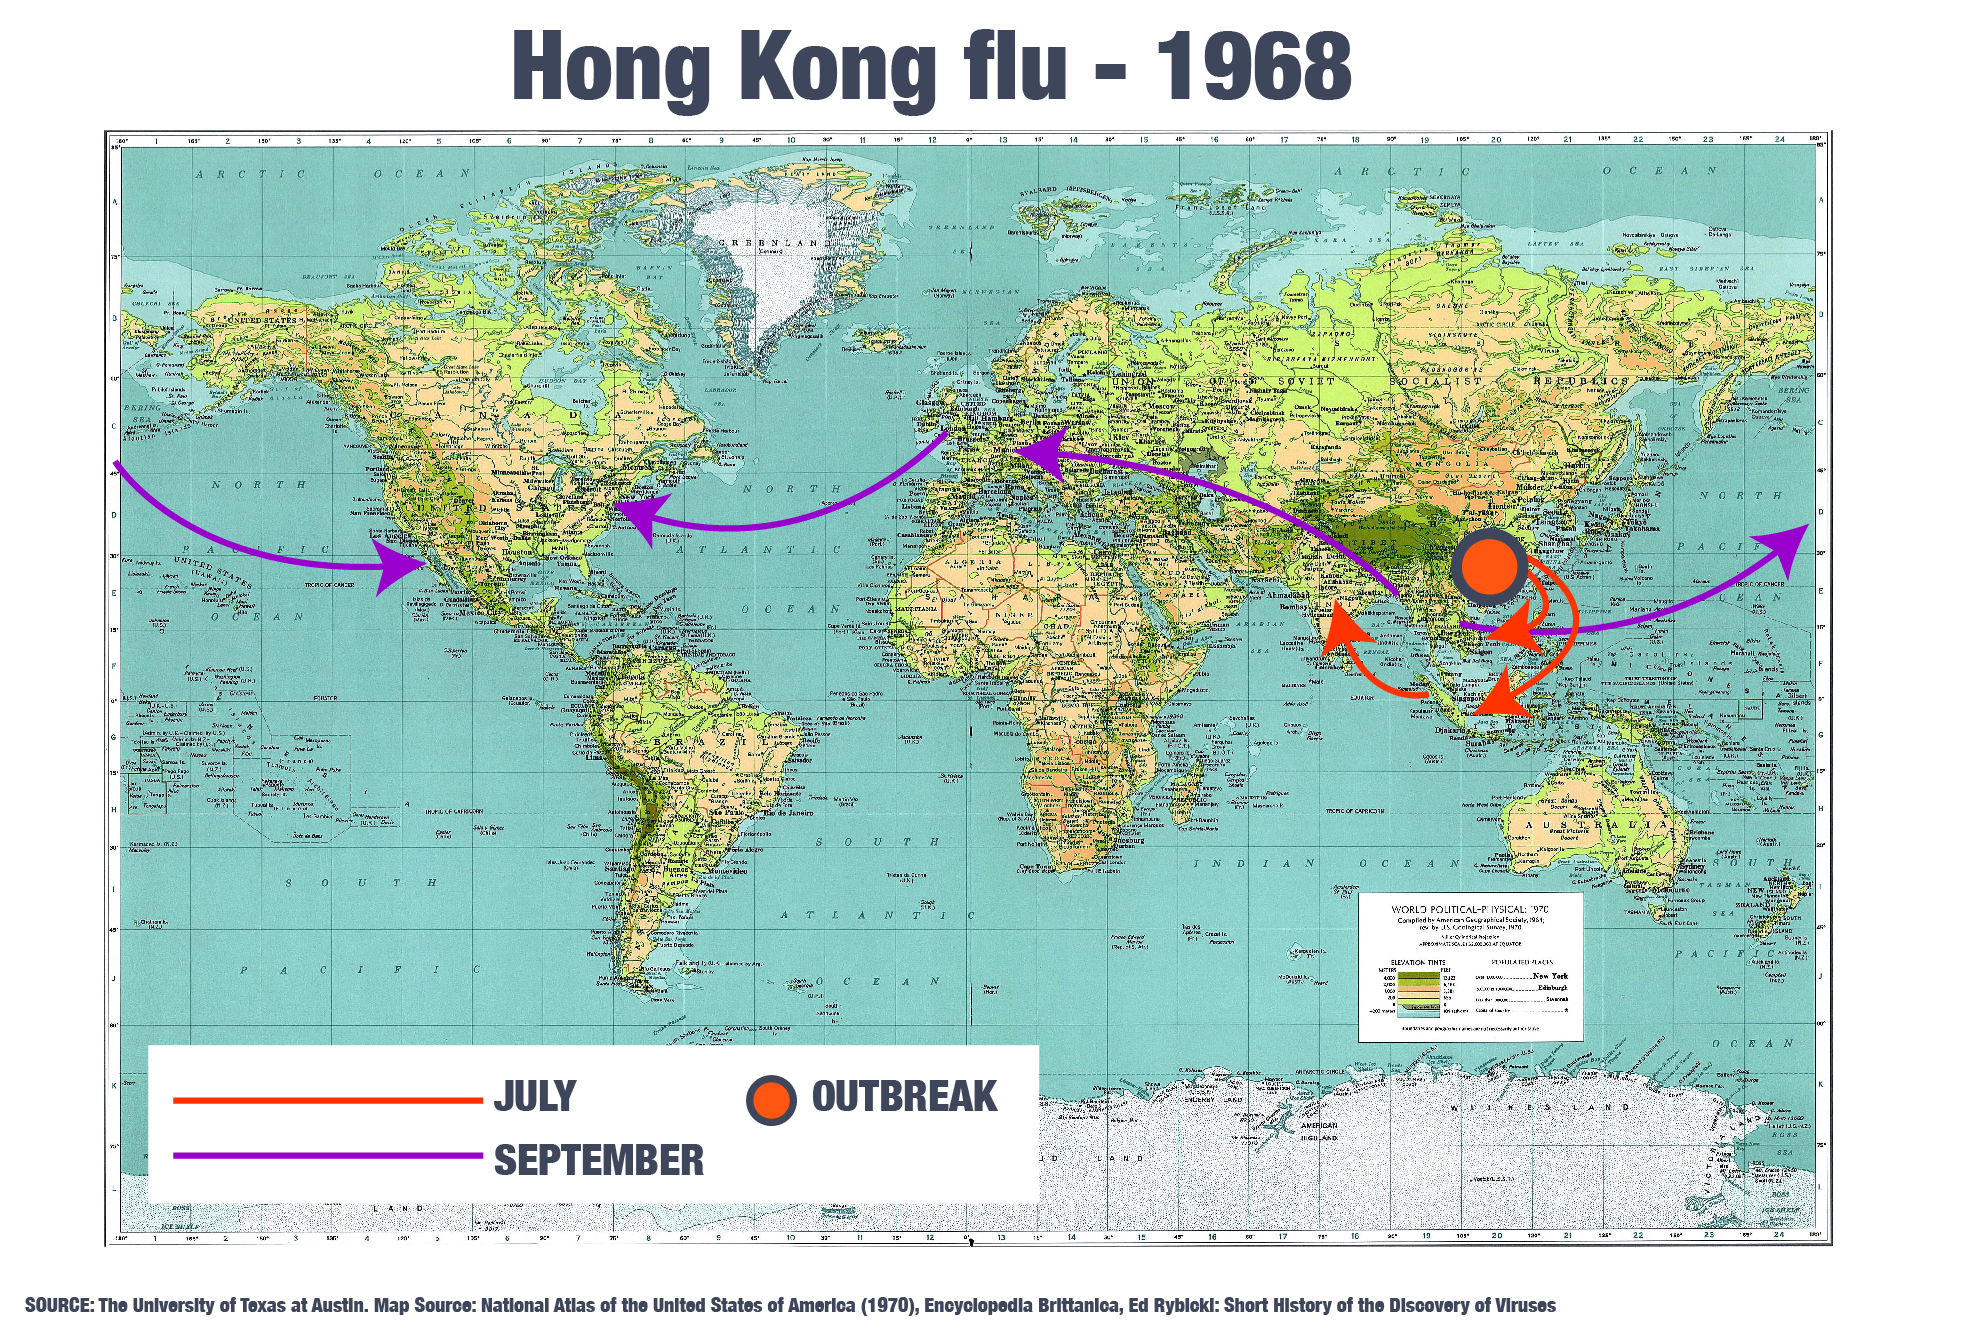 DO NOT USE: INTERACTIVE: Hong Kong flu 1968 map